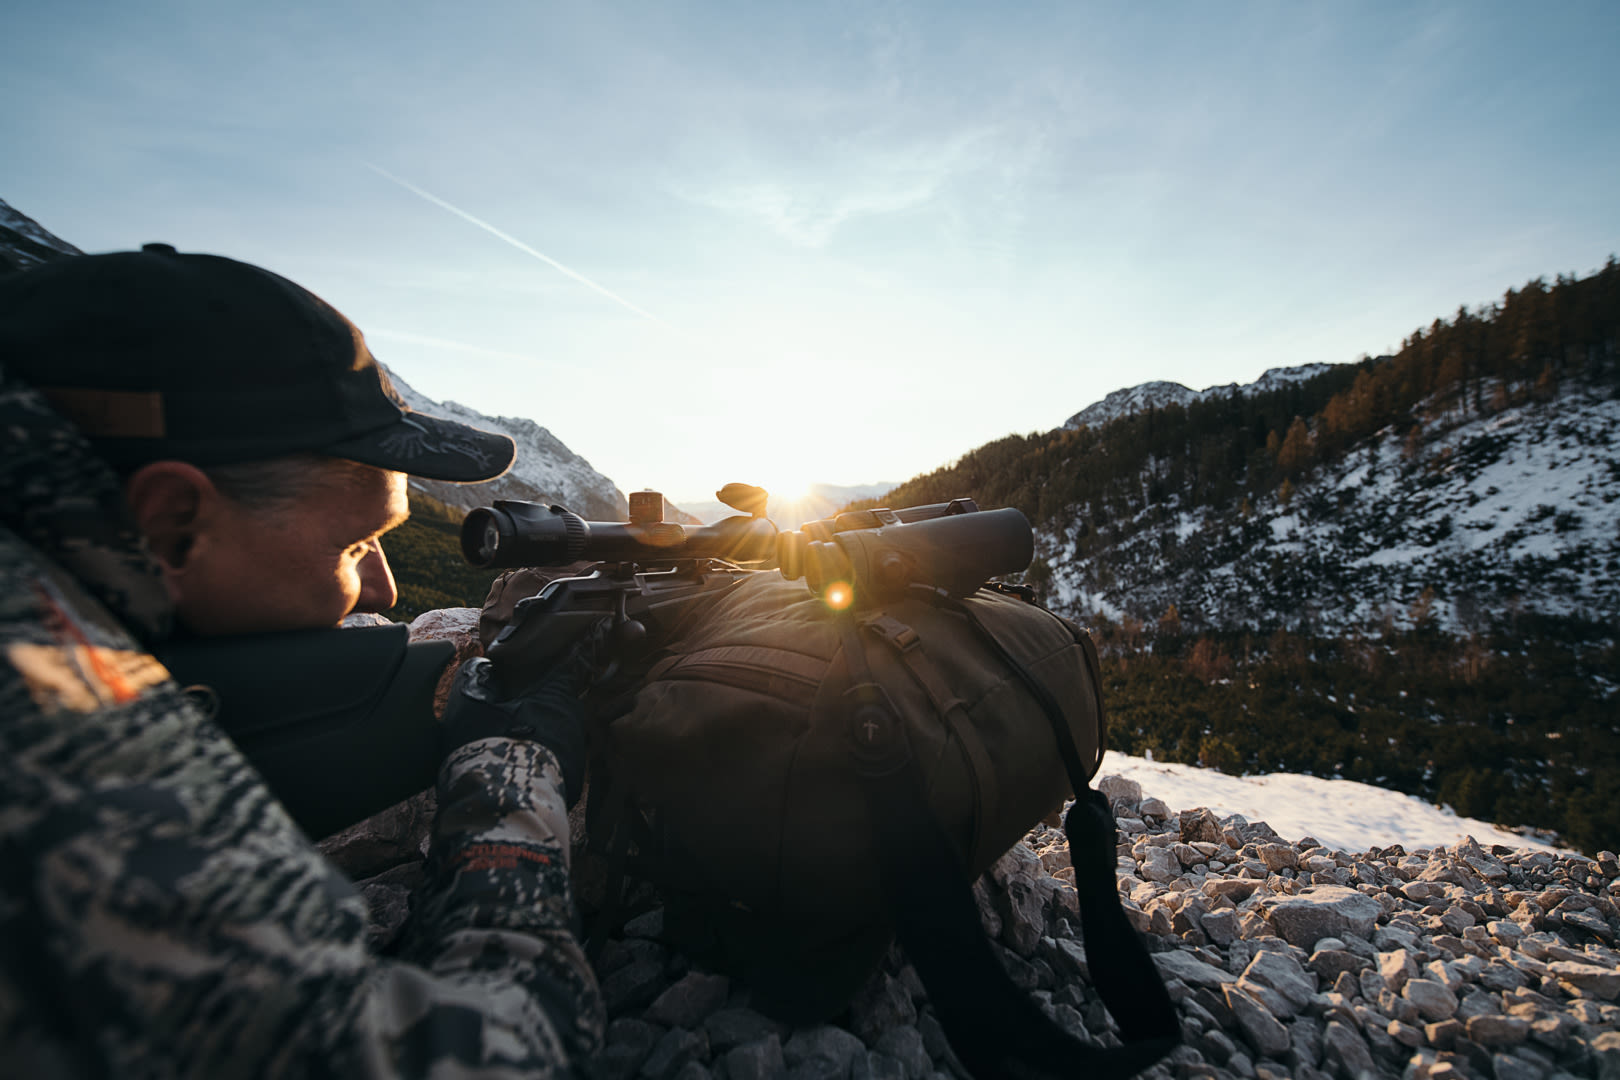 EL Range TA 10x42 sunset shot with hunter, Halltal